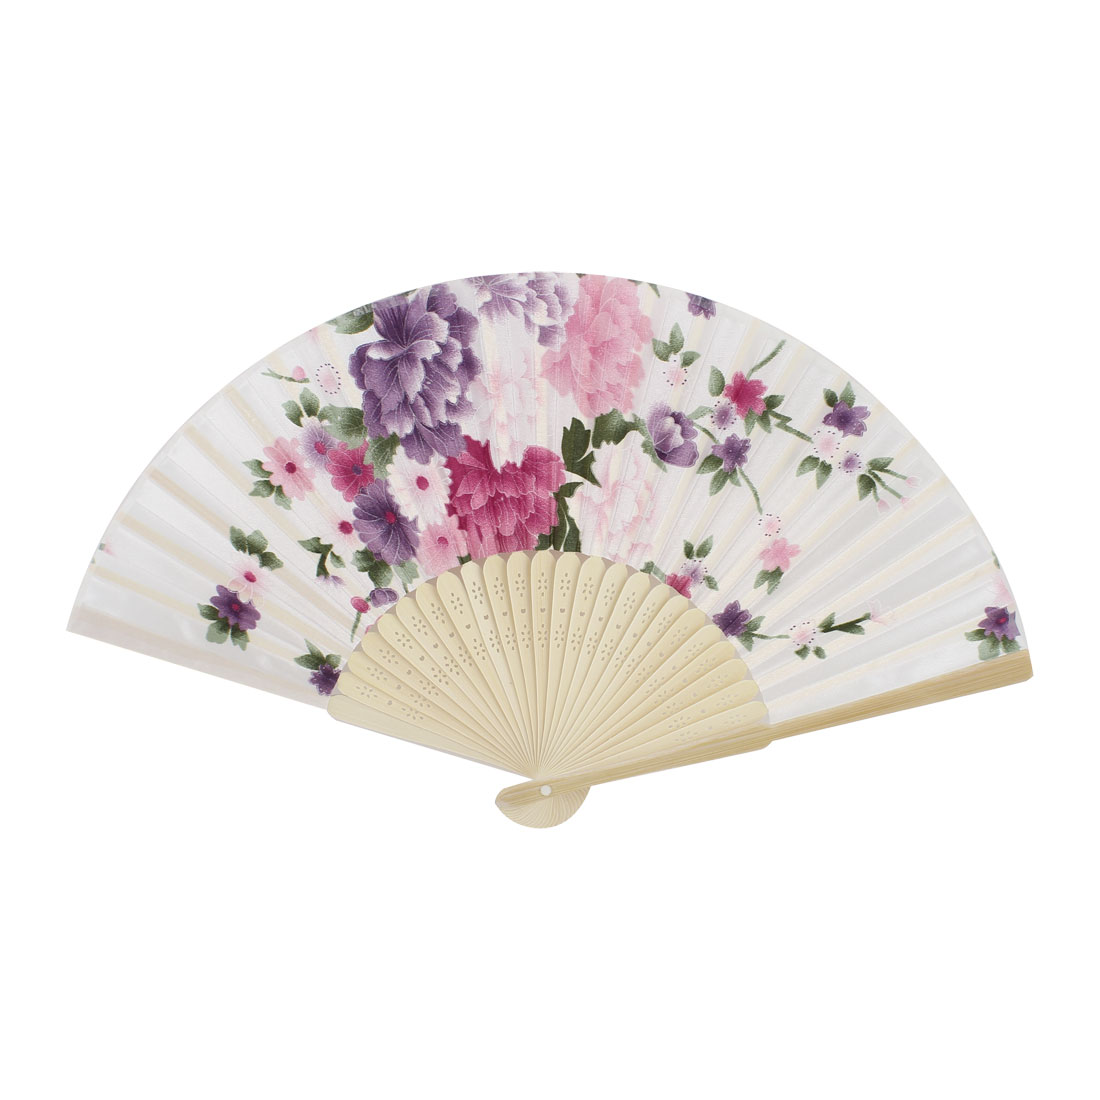 Purple Peony Pattern Hollow Out Design Bamboo Ribs Folding Hand Fan White